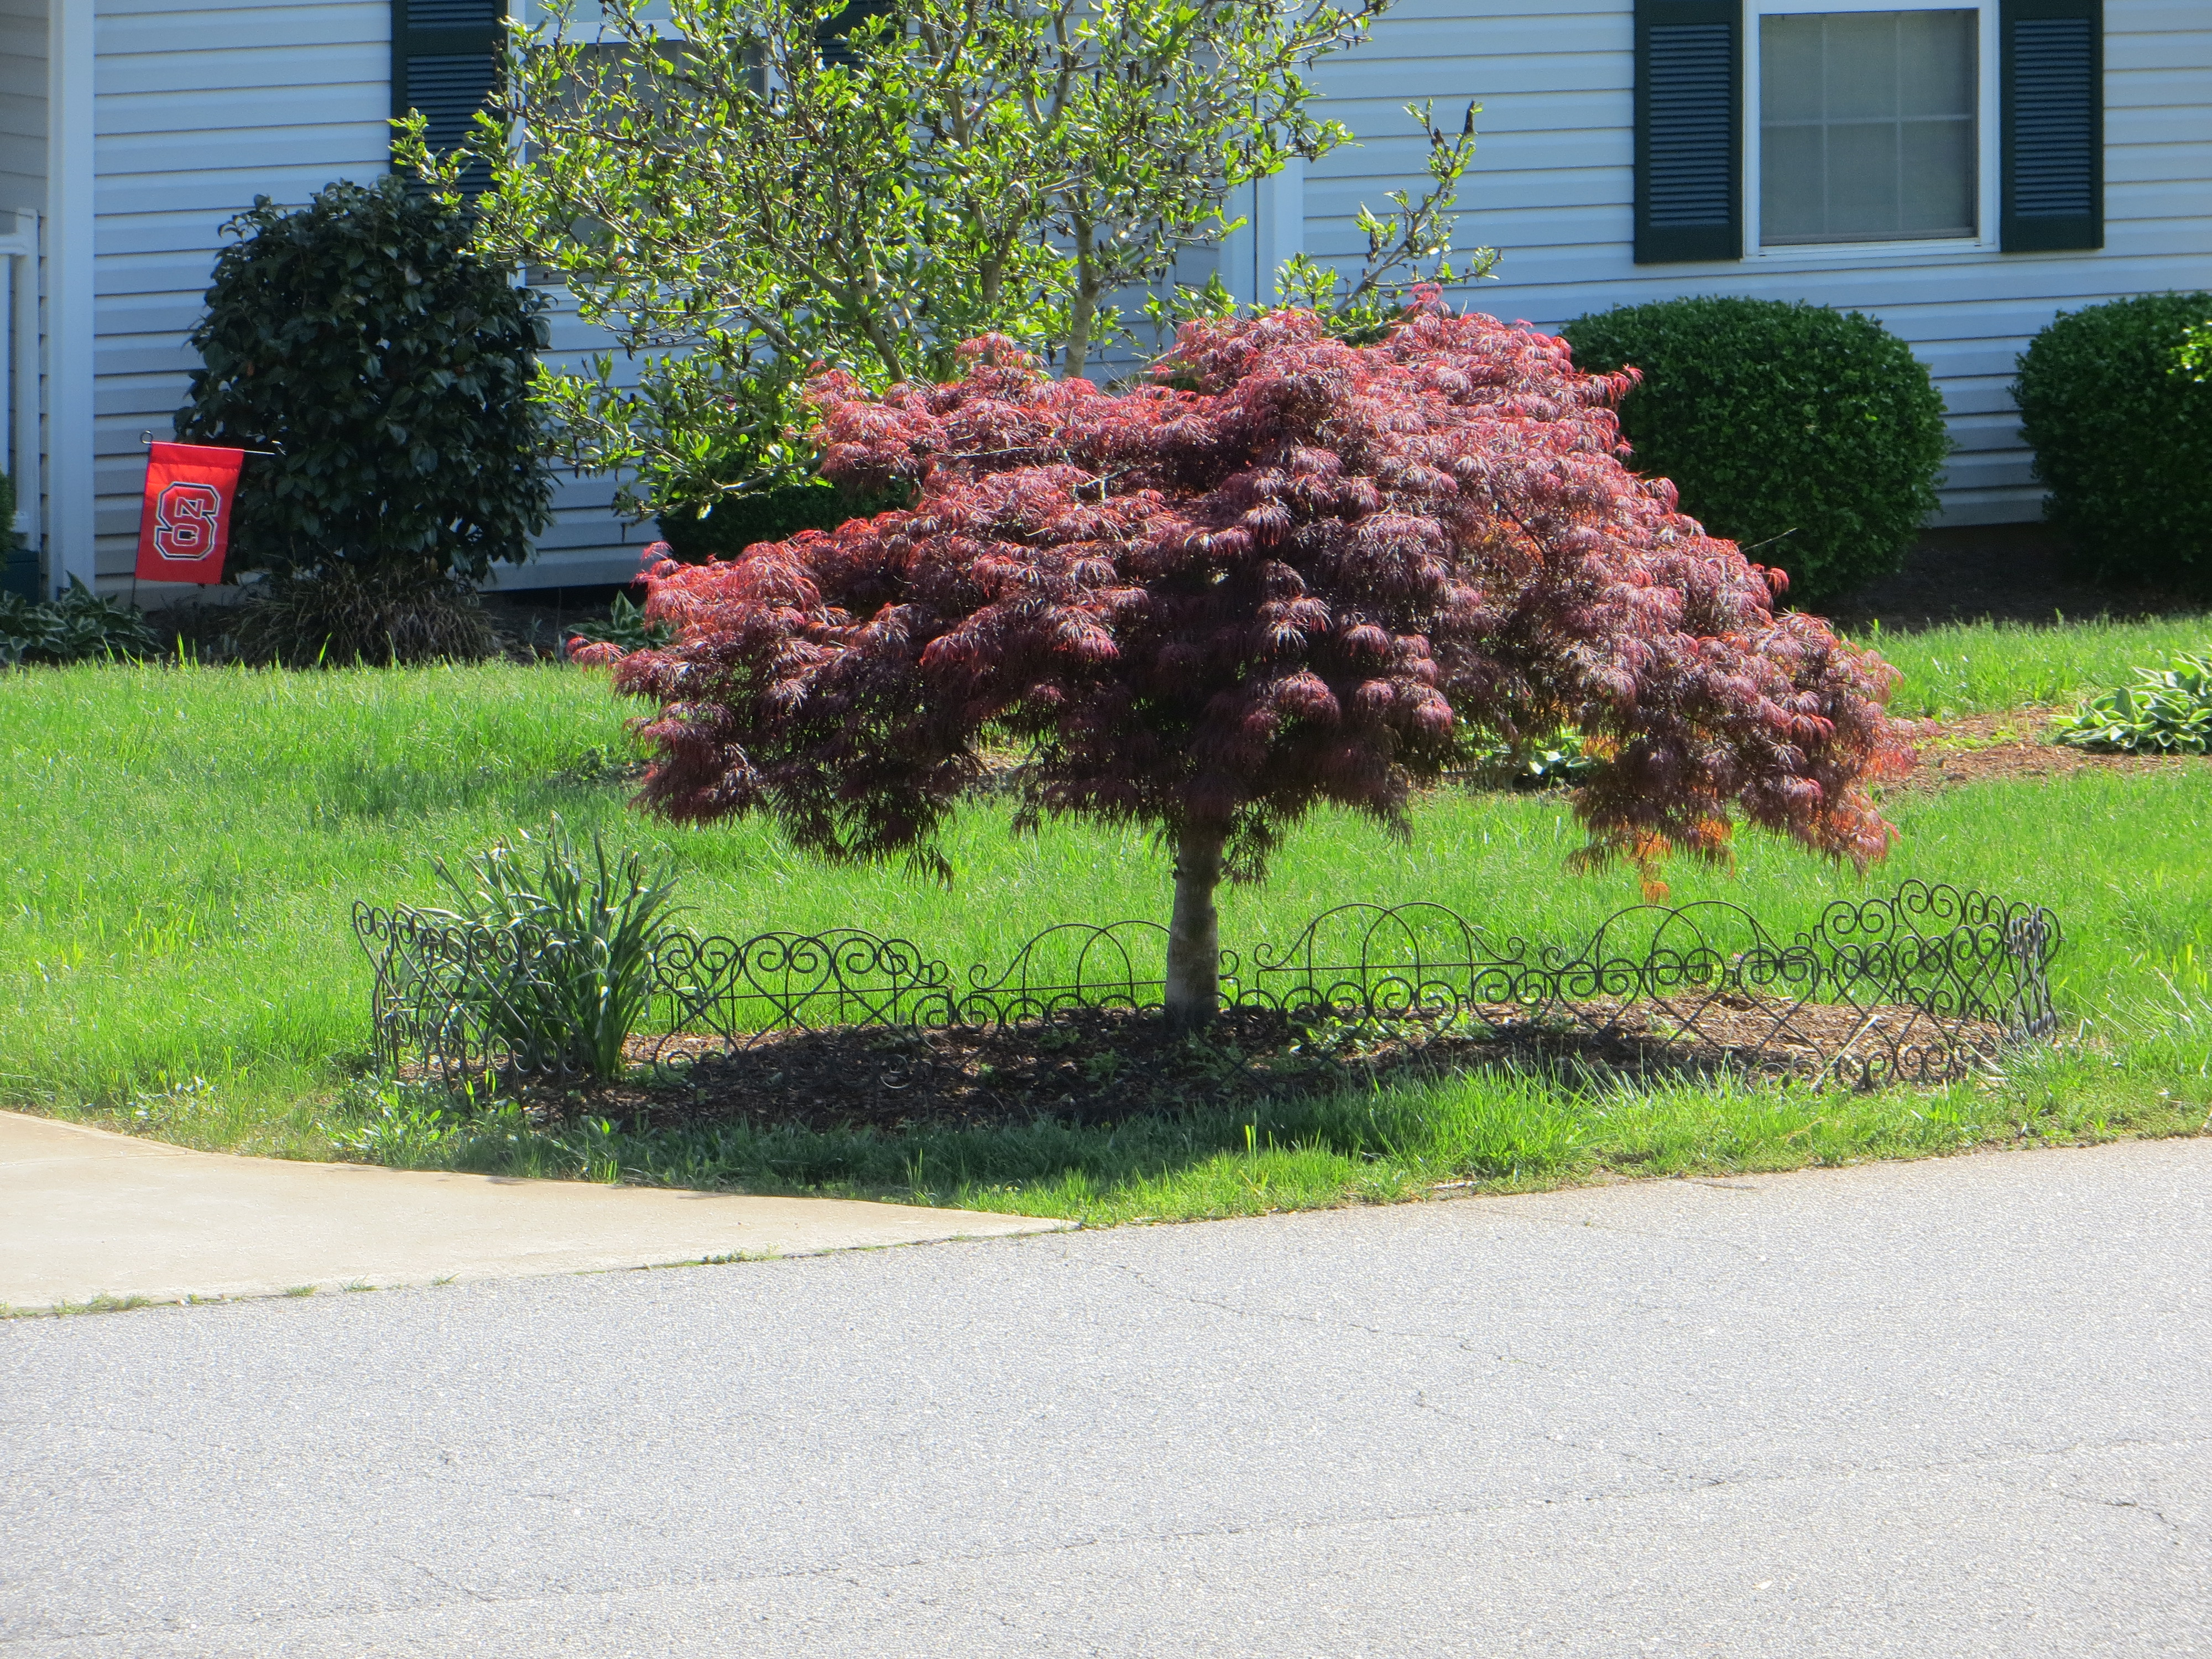 Regaling A Yard Japanese Maples So Does That Mean Dwarf Japanese Maple Tree Nz Dwarf Japanese Maple Tree Zone 5 A Dwarf Japanese Maple houzz-02 Dwarf Japanese Maple Tree